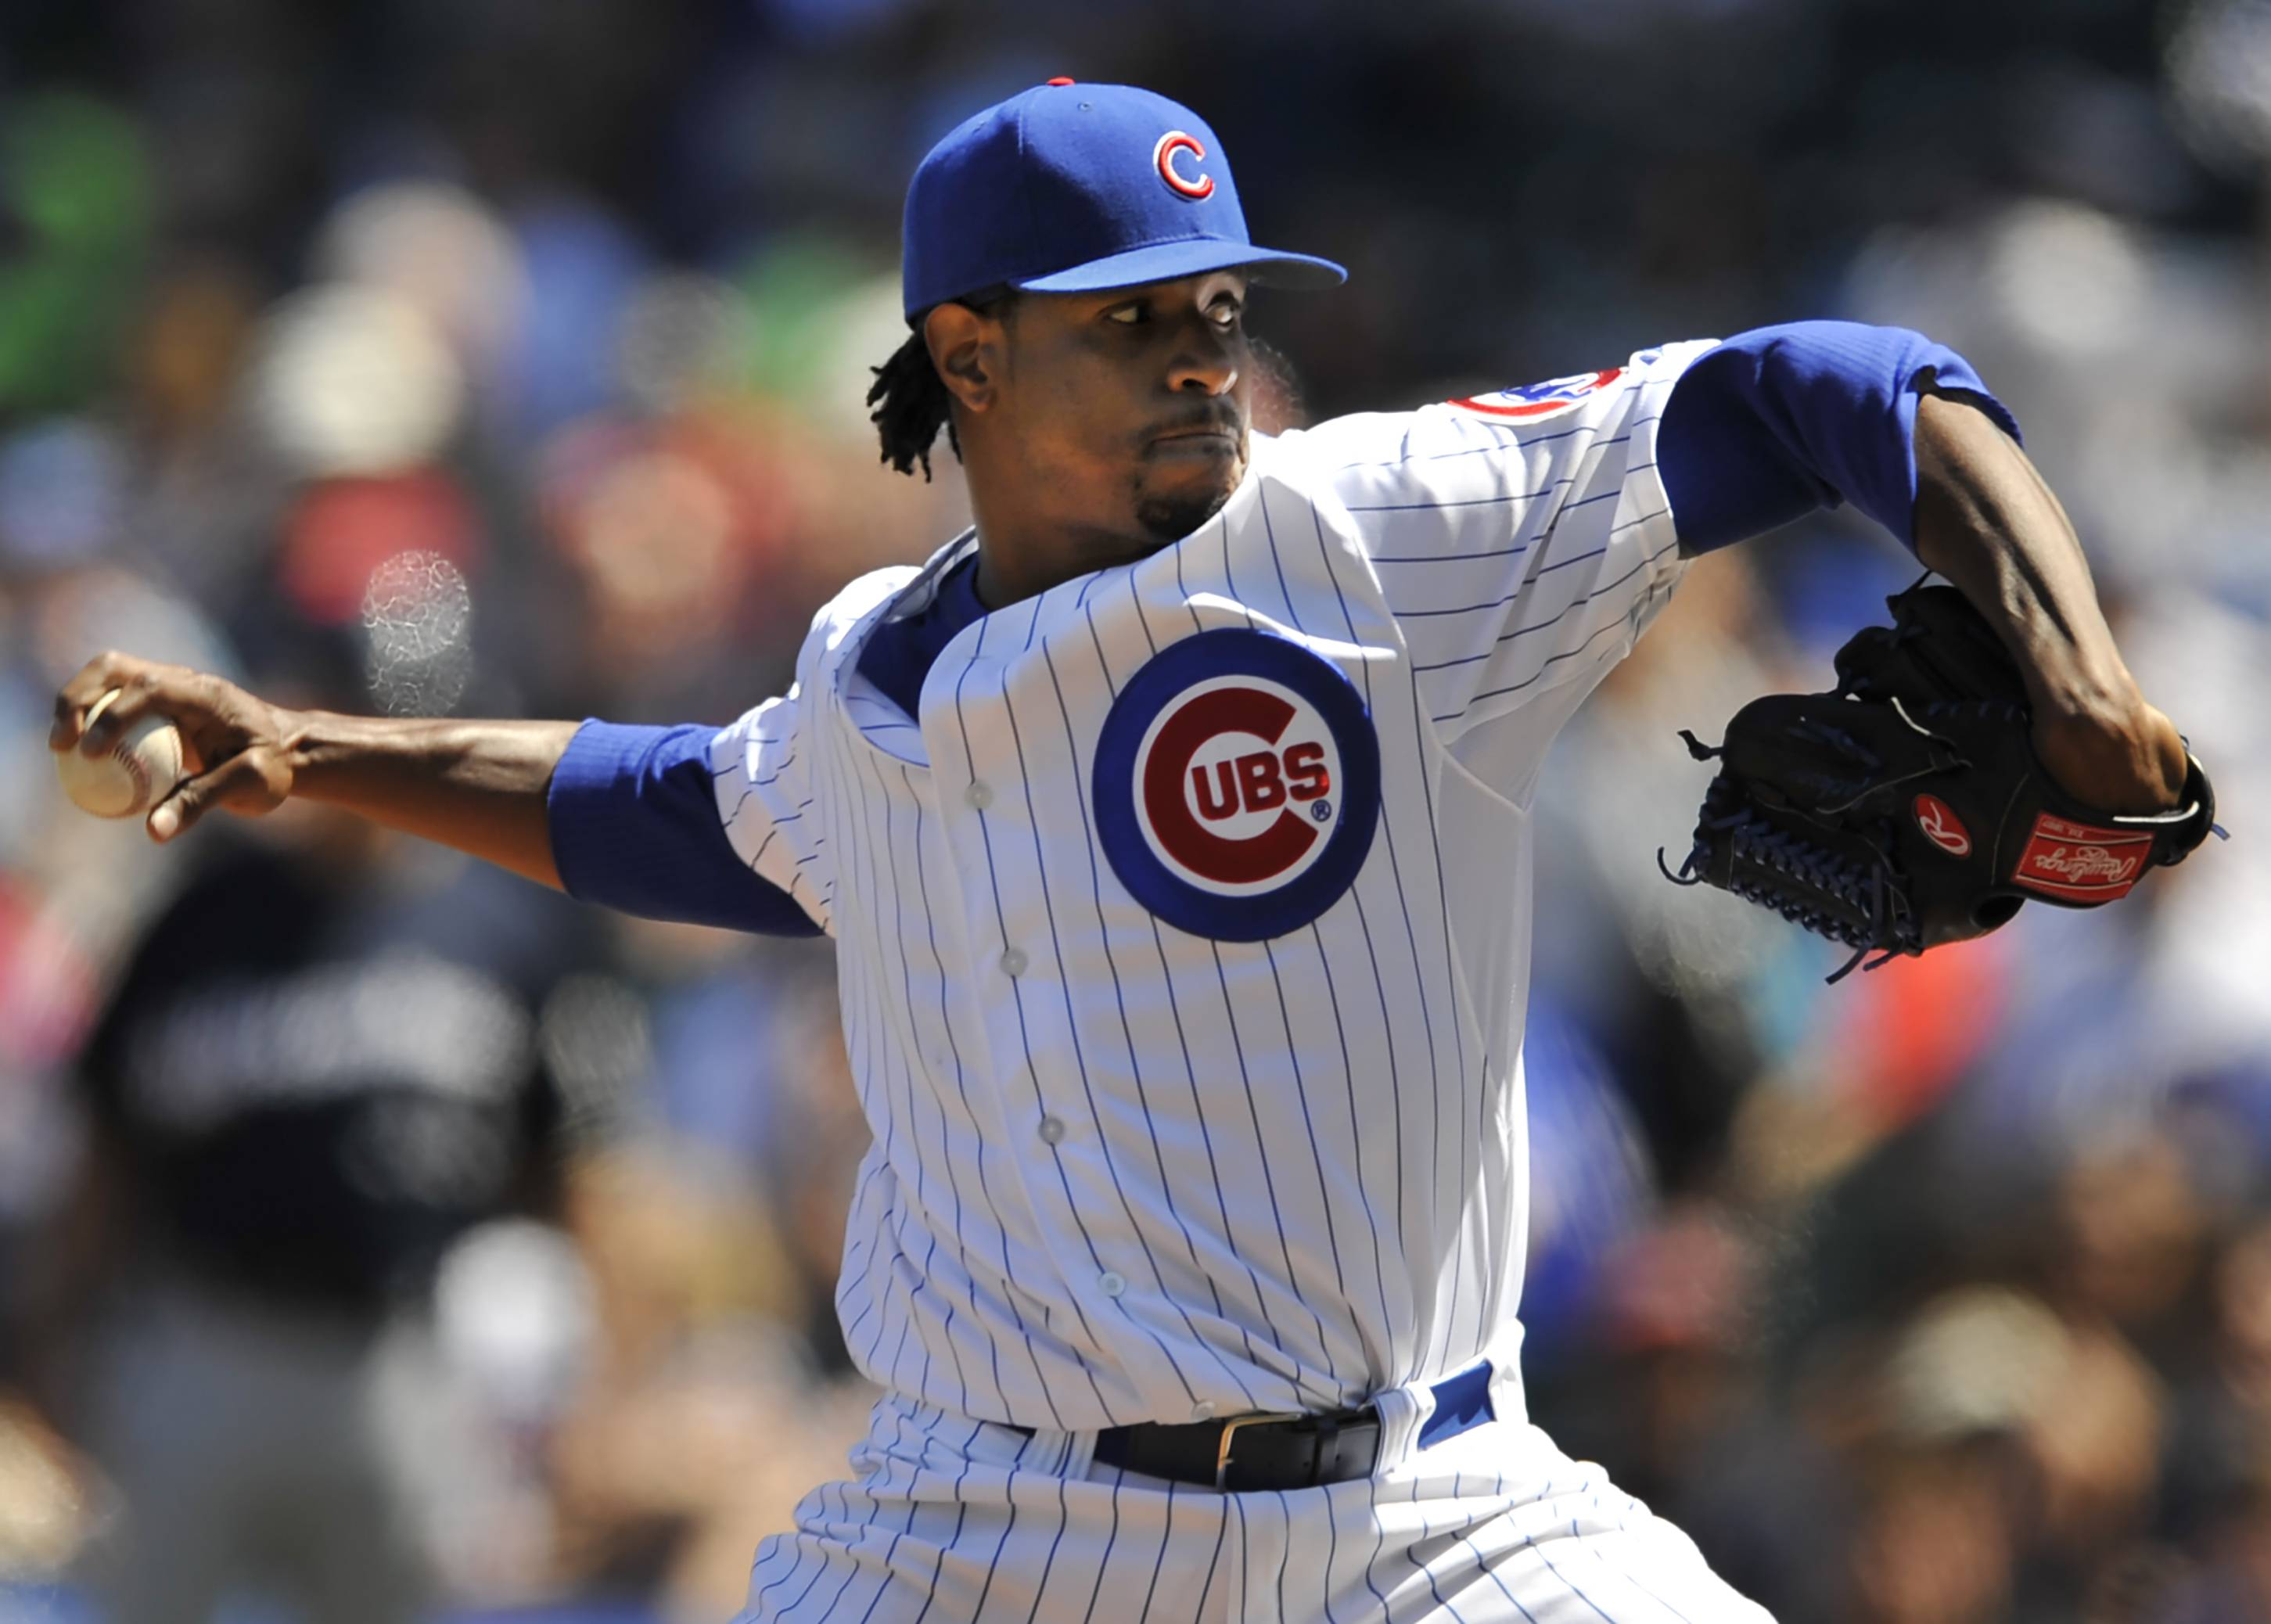 Cubs starter Edwin Jackson delivers a pitch during Thursday's first inning at Wrigley Field.